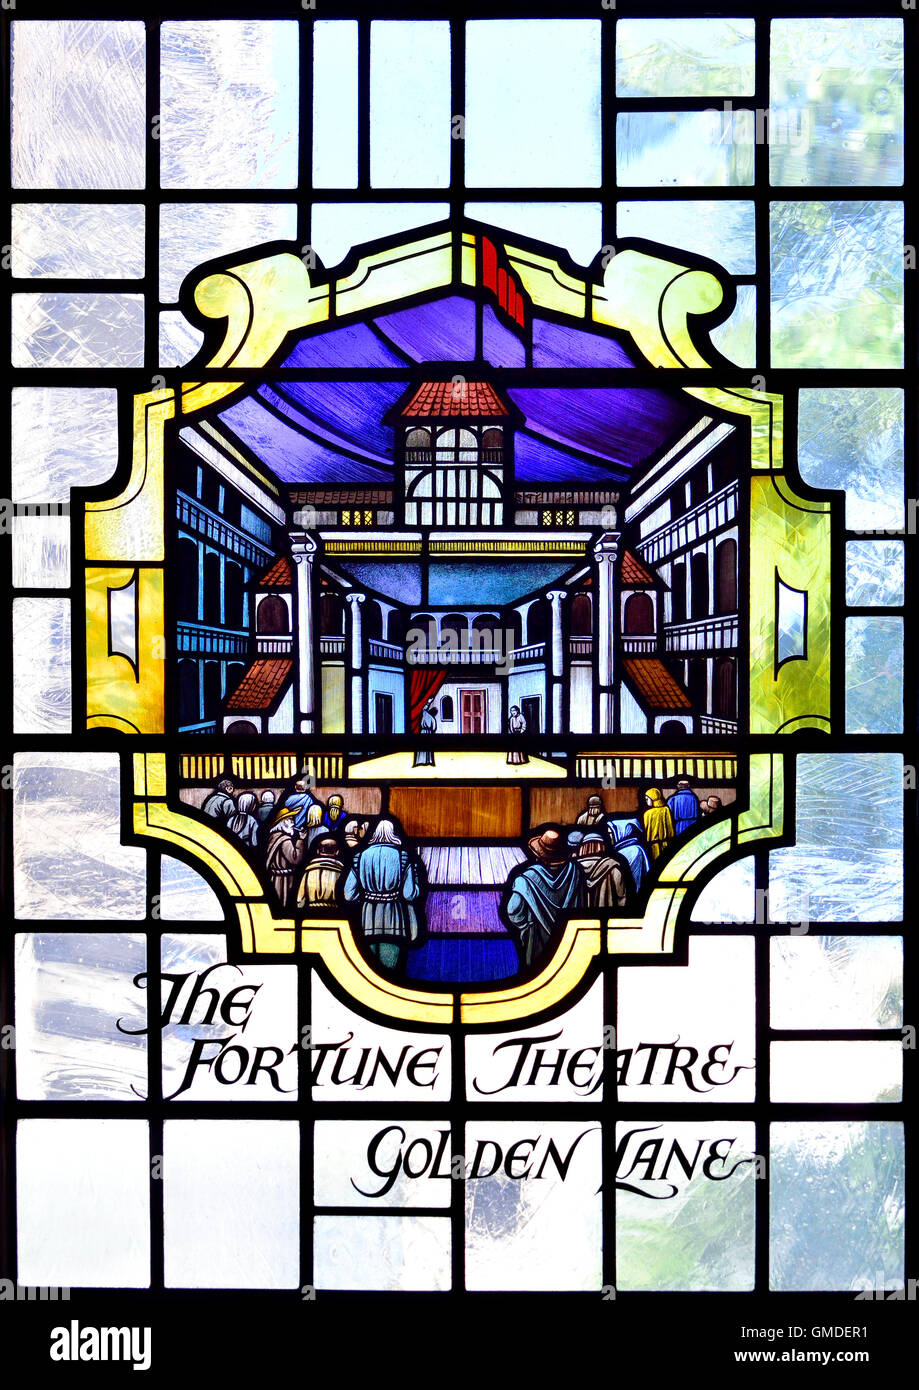 London, England, UK. St Giles' Cripplegate Church, Fore Street (Barbican). Stained glass window: Fortune Theatre - Stock Image